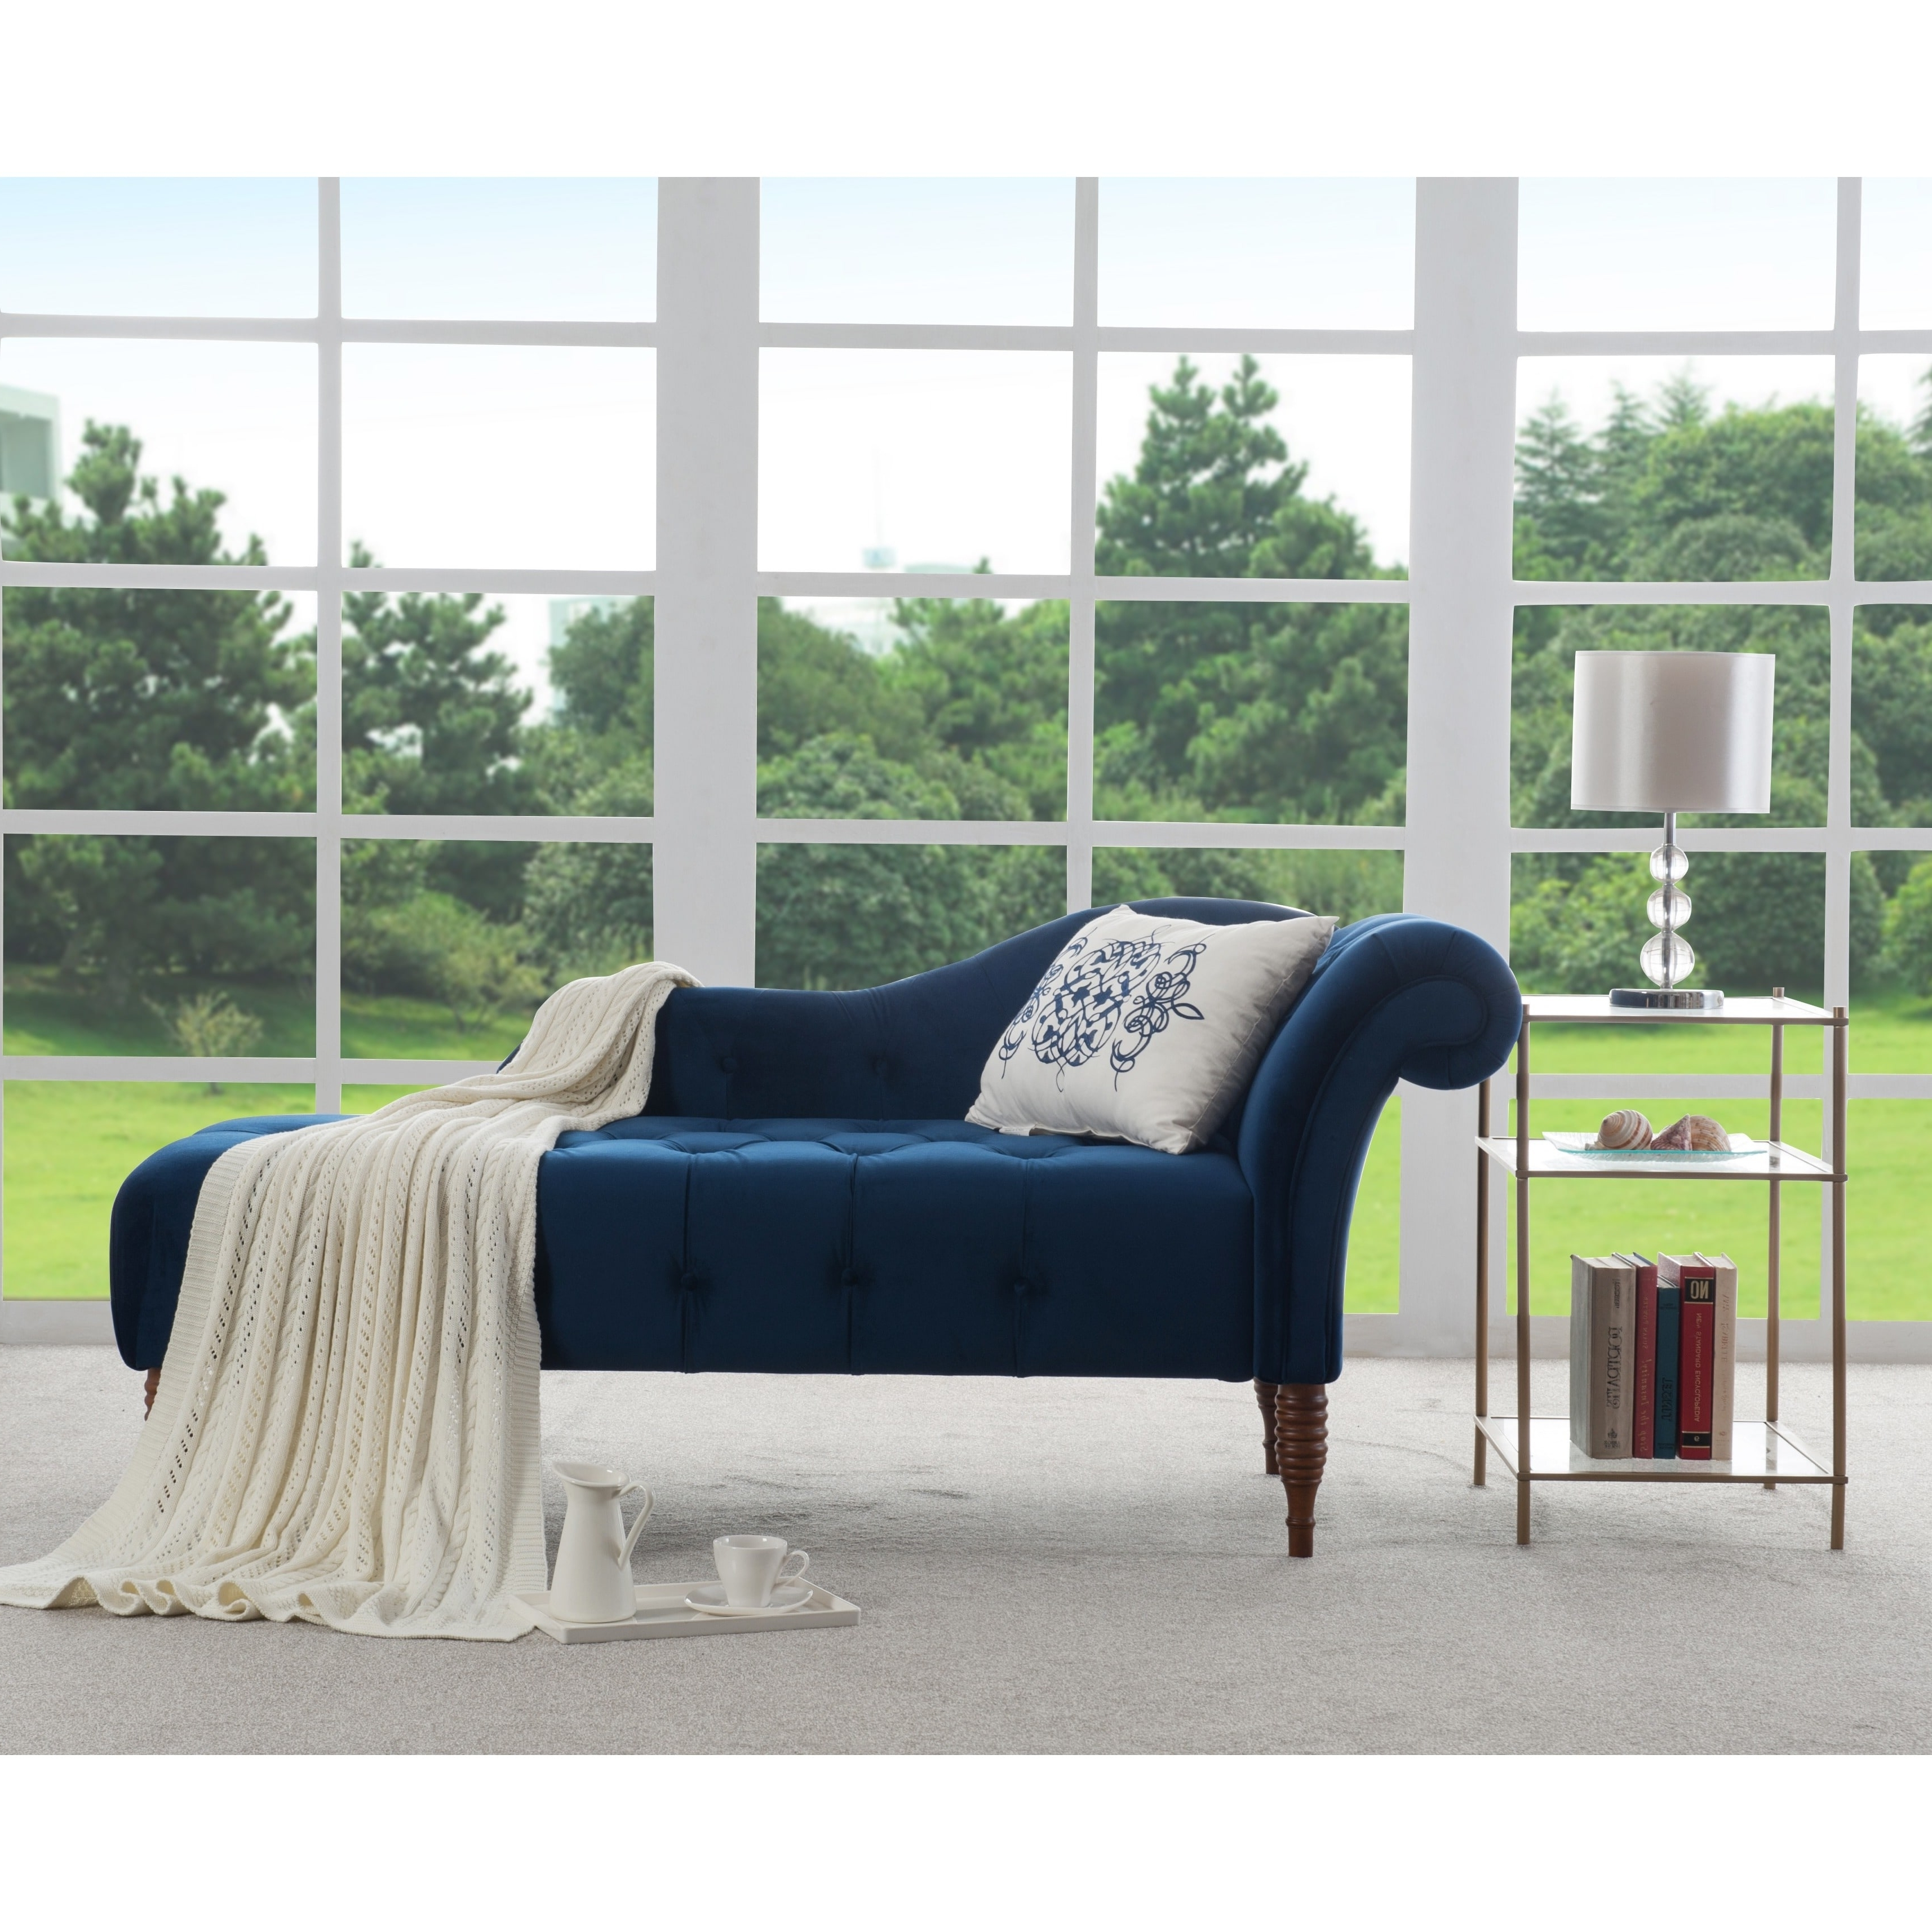 Overstock Chaises For Most Recent Jennifer Taylor Samuel Tufted Chaise Lounge – Free Shipping Today (View 14 of 15)